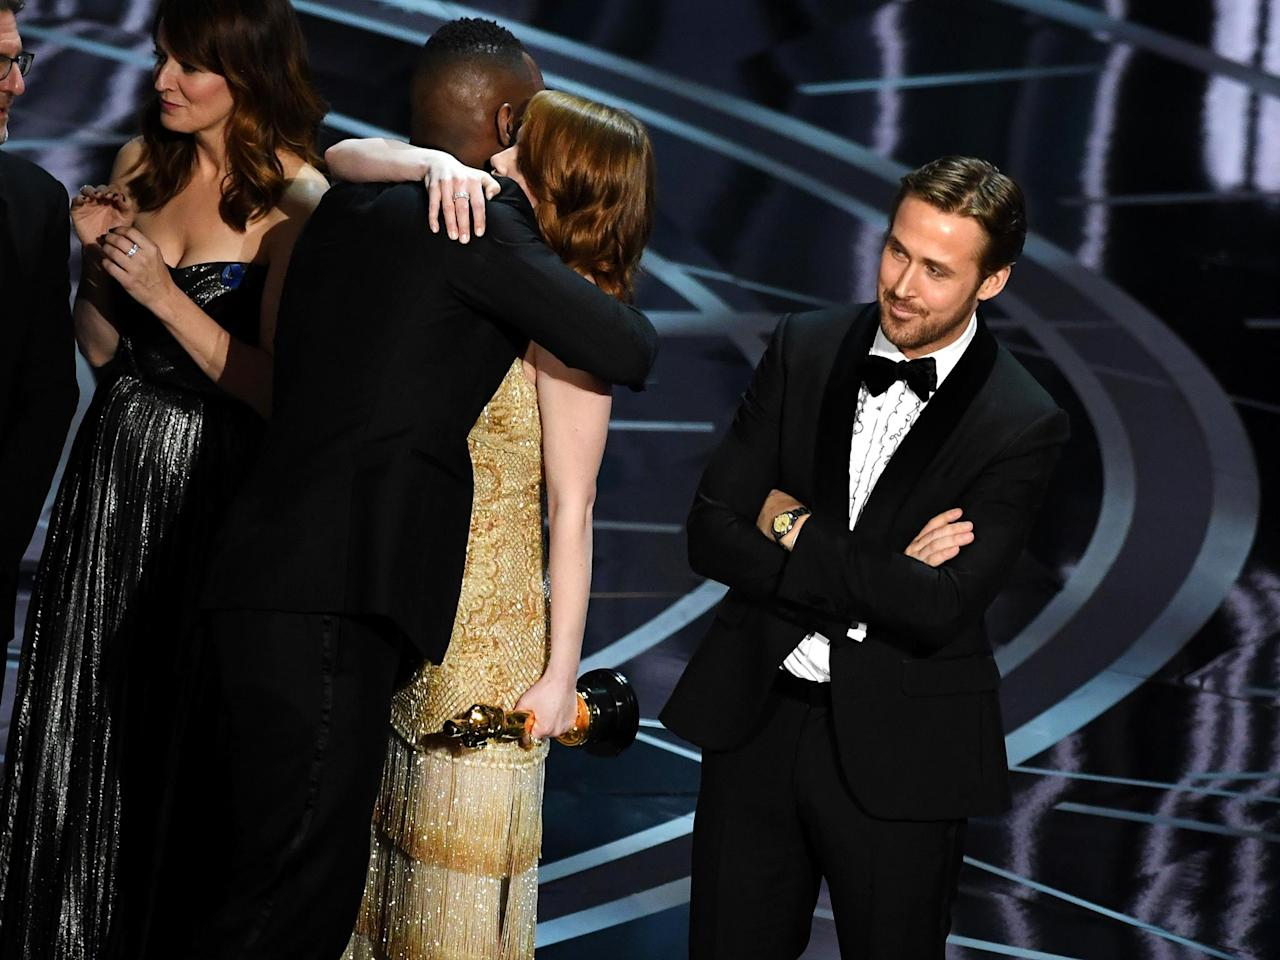 Oscars 2017: How La La Land actors reacted as they realised Best Picture mistake live on stage